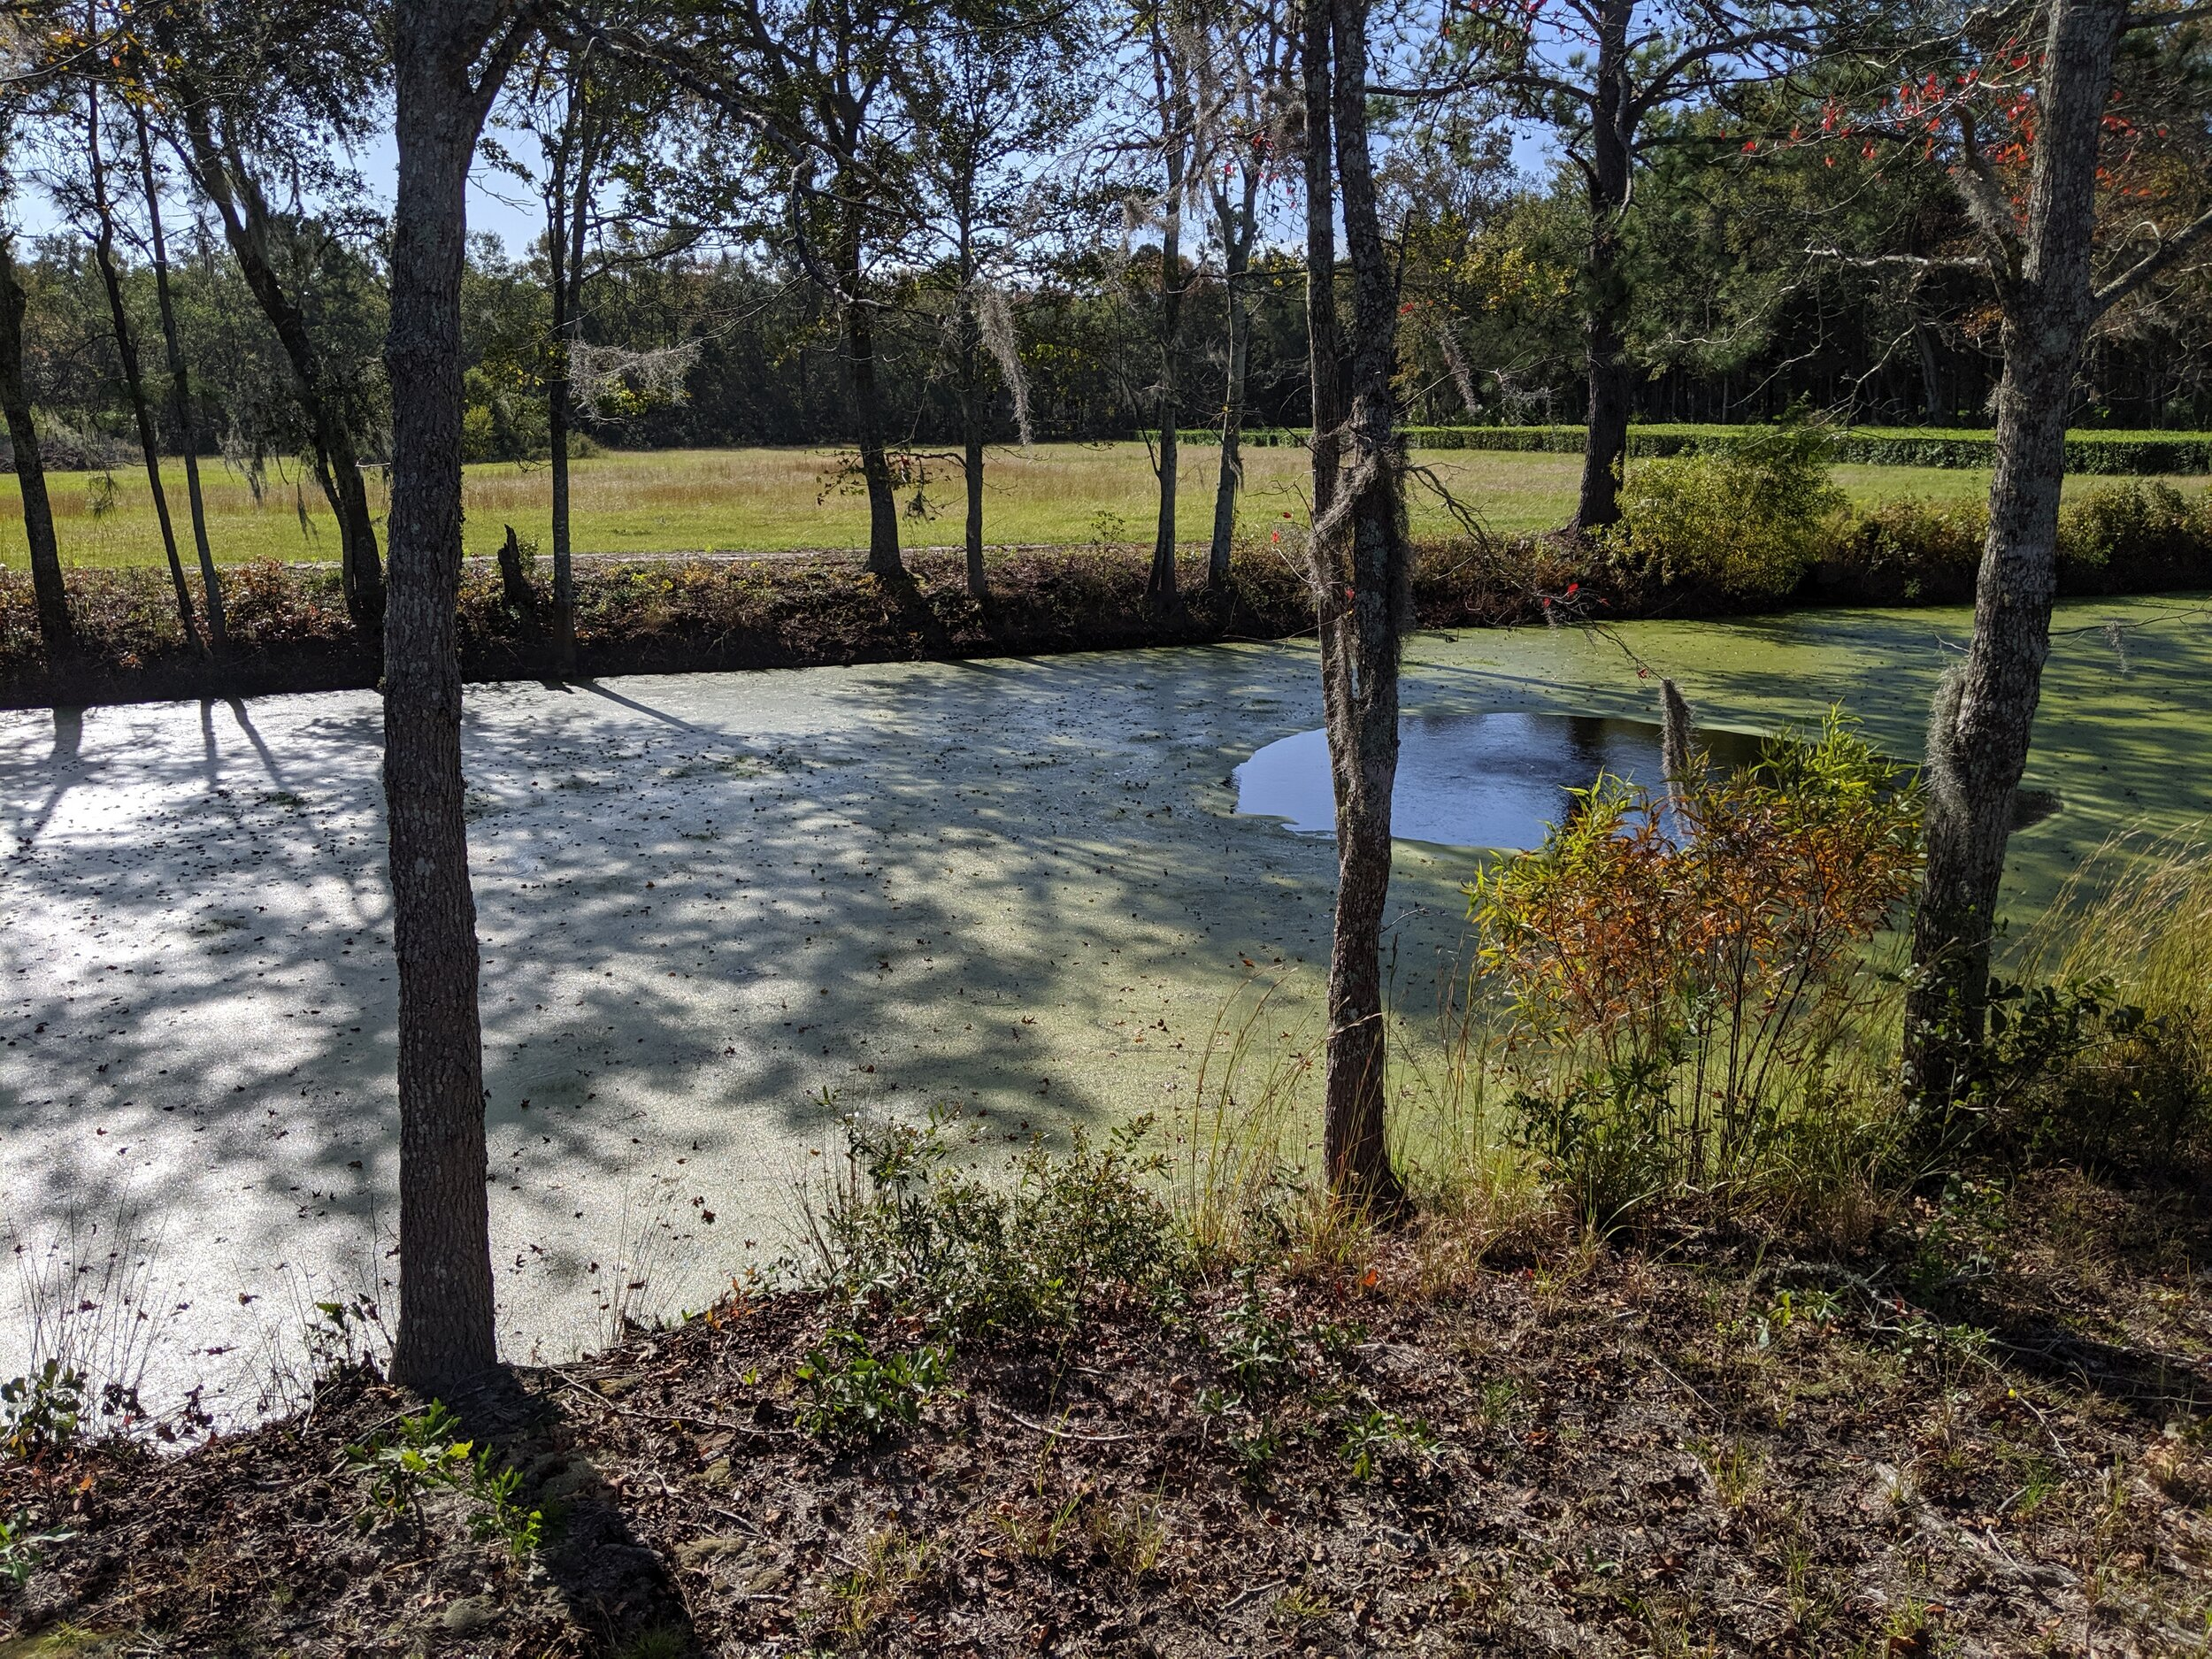 As no insecticides (or pesticides) are used here, this pond is stocked with fish and an alligator to eat up all the mosquito larva. Most other bugs (apart from butterflies) stay away due to the caffeine in the plants.